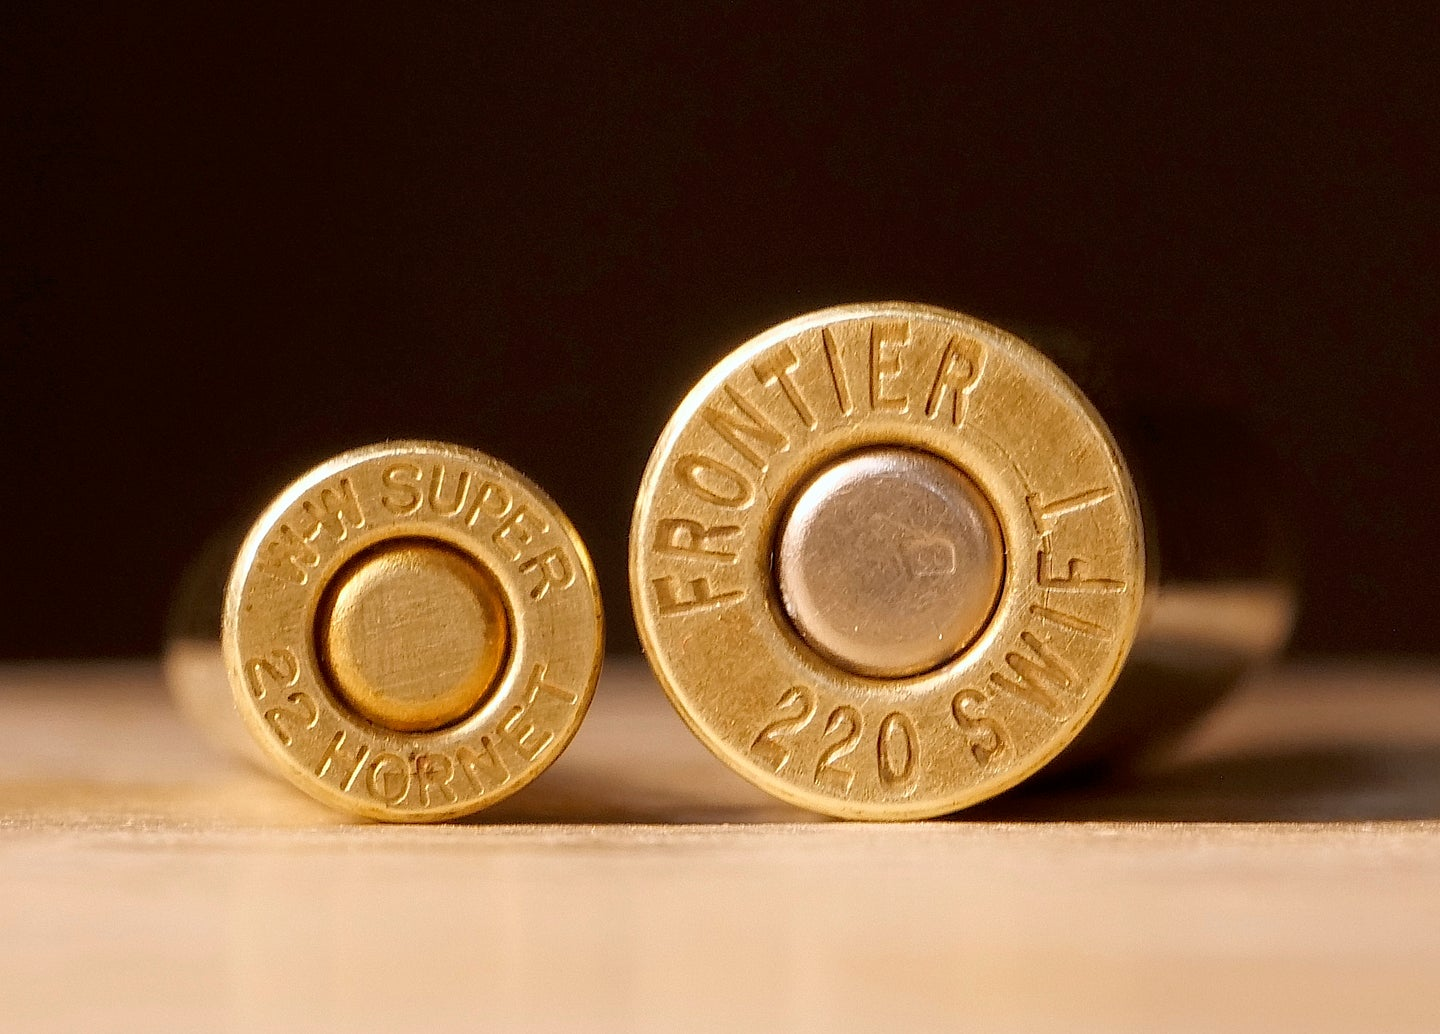 The .22 Hornet wasn't even close to the .220 Swift when it came to muzzle velocity.